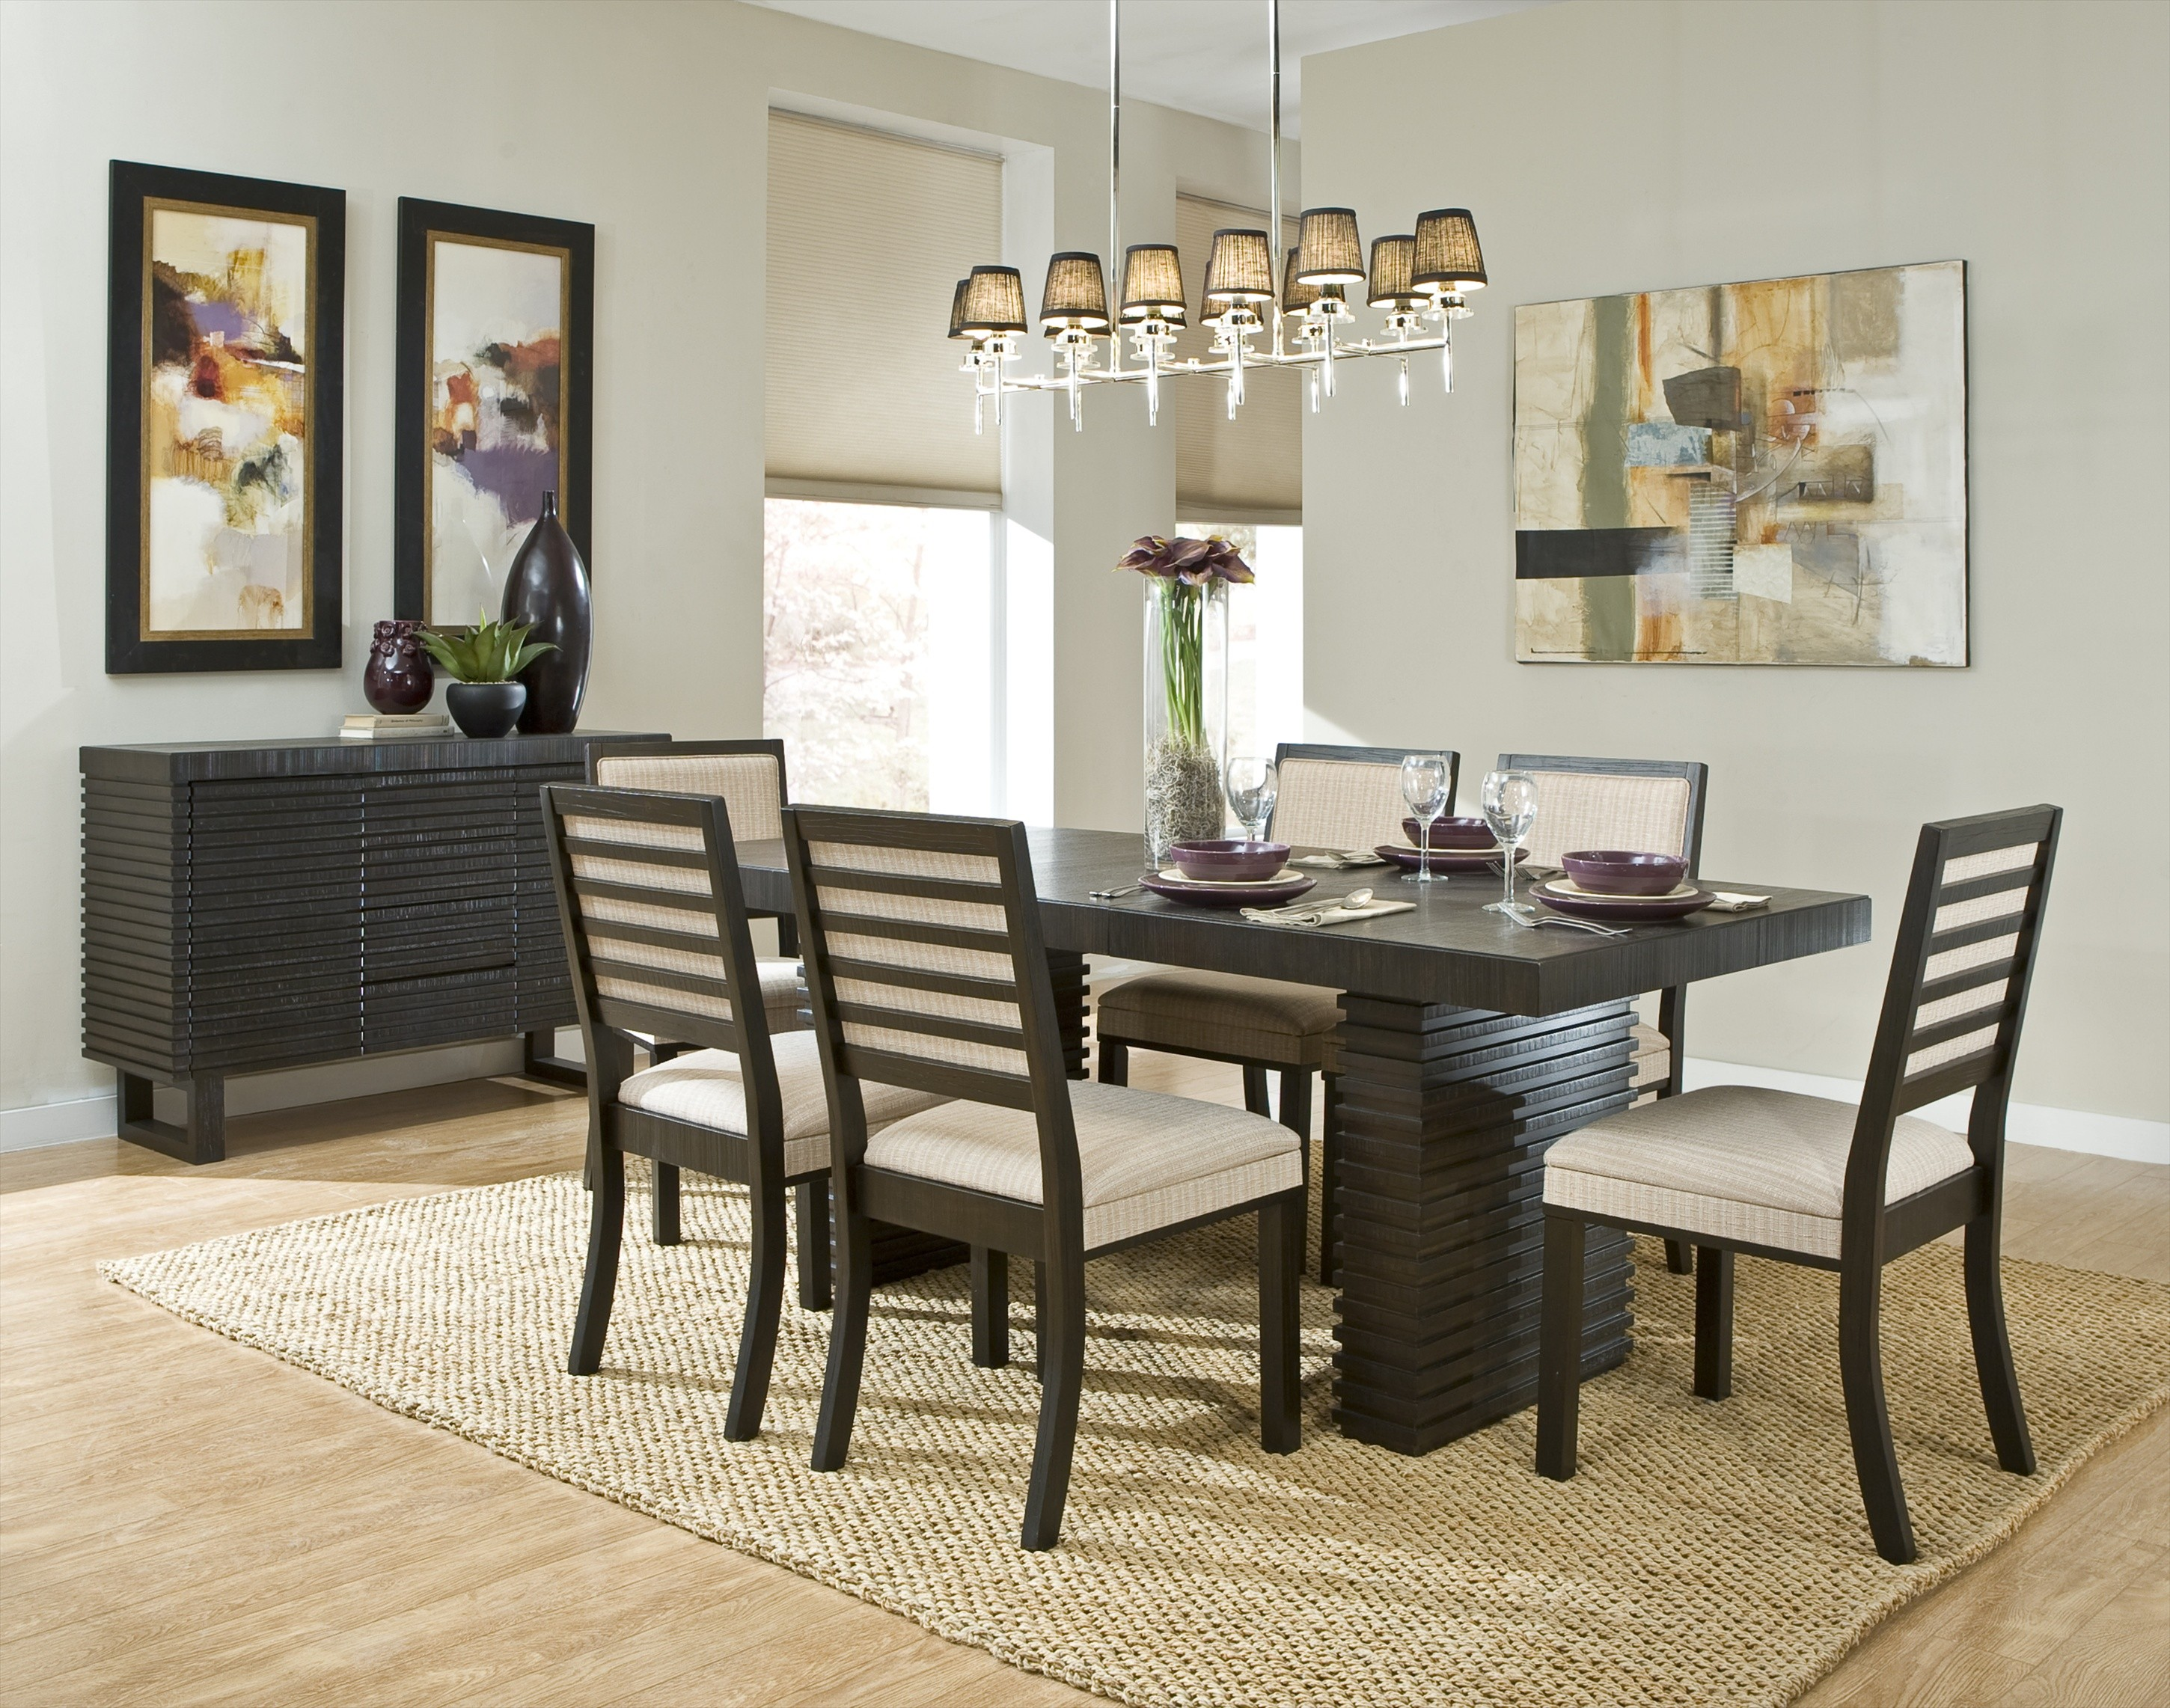 Hardwood Flooring Black Side Table White Wall White Ceiling Two Toned Dining  Chairs Black Dining Table